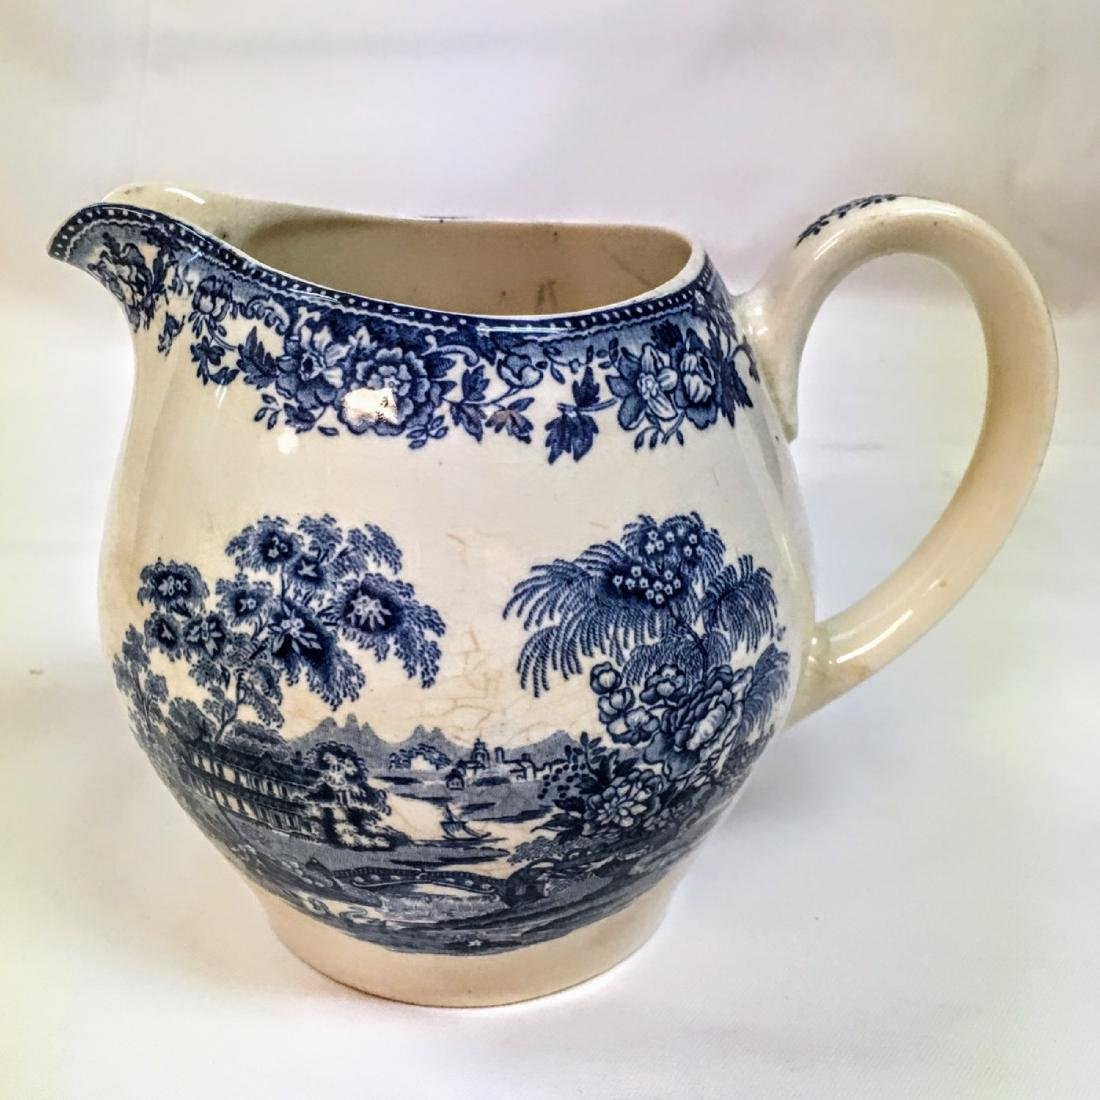 PITCHER A Meakin Blue on White Tonquin Staffordshire